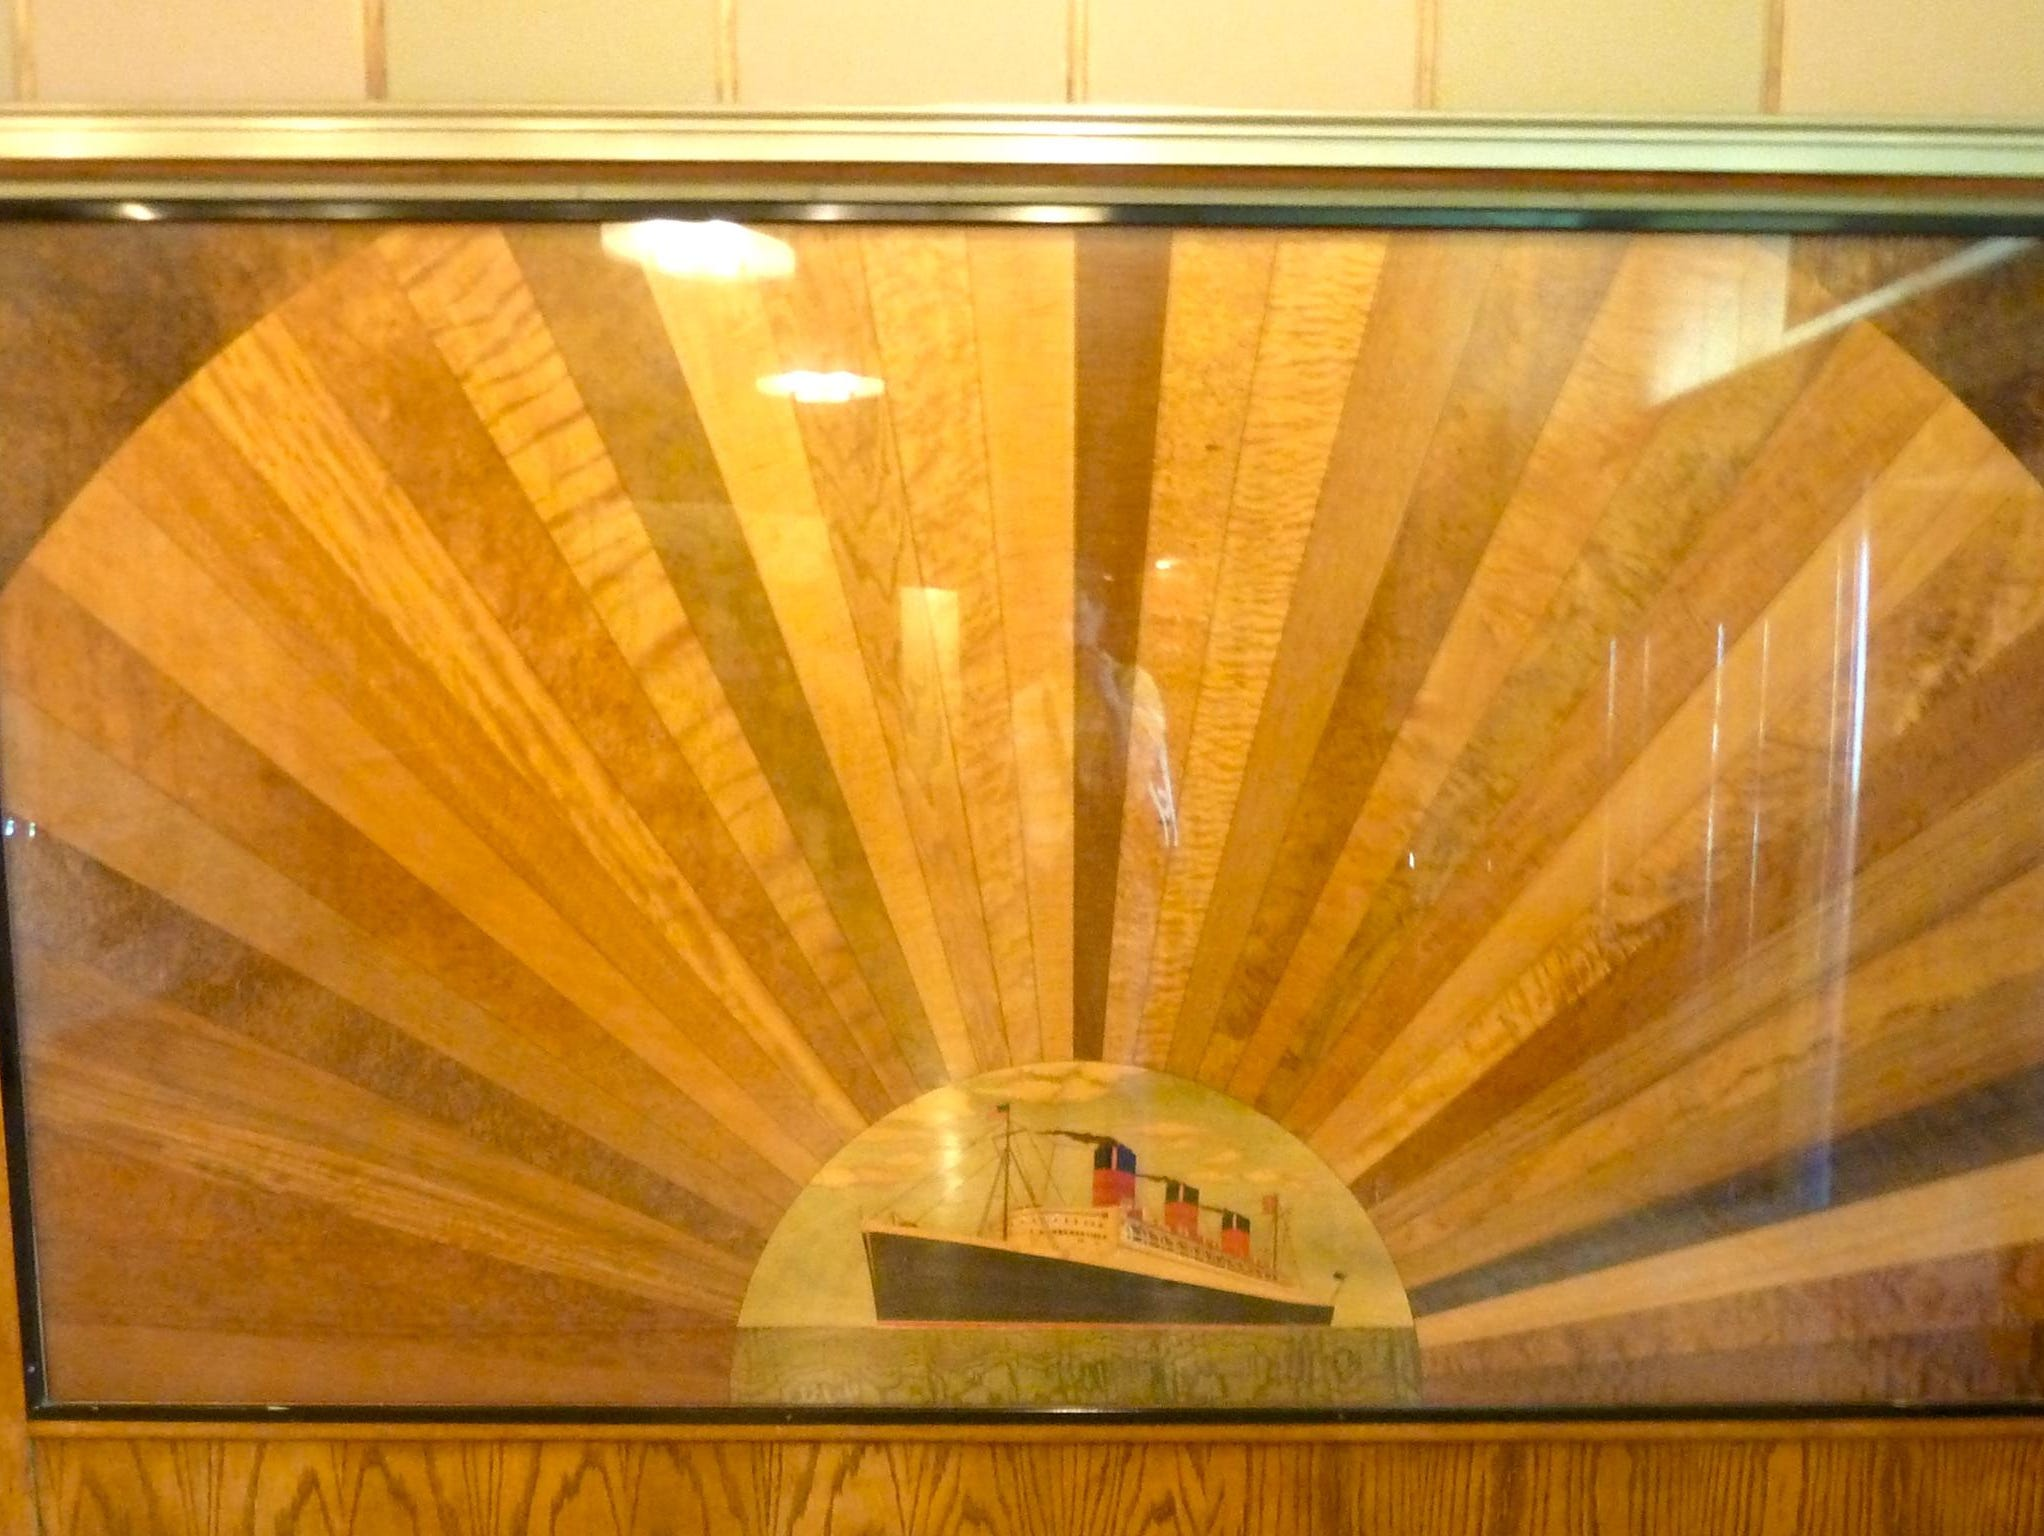 This exquisite marquetry panel shows some of the exotic and now rare woodwork featured on the Queen Mary.